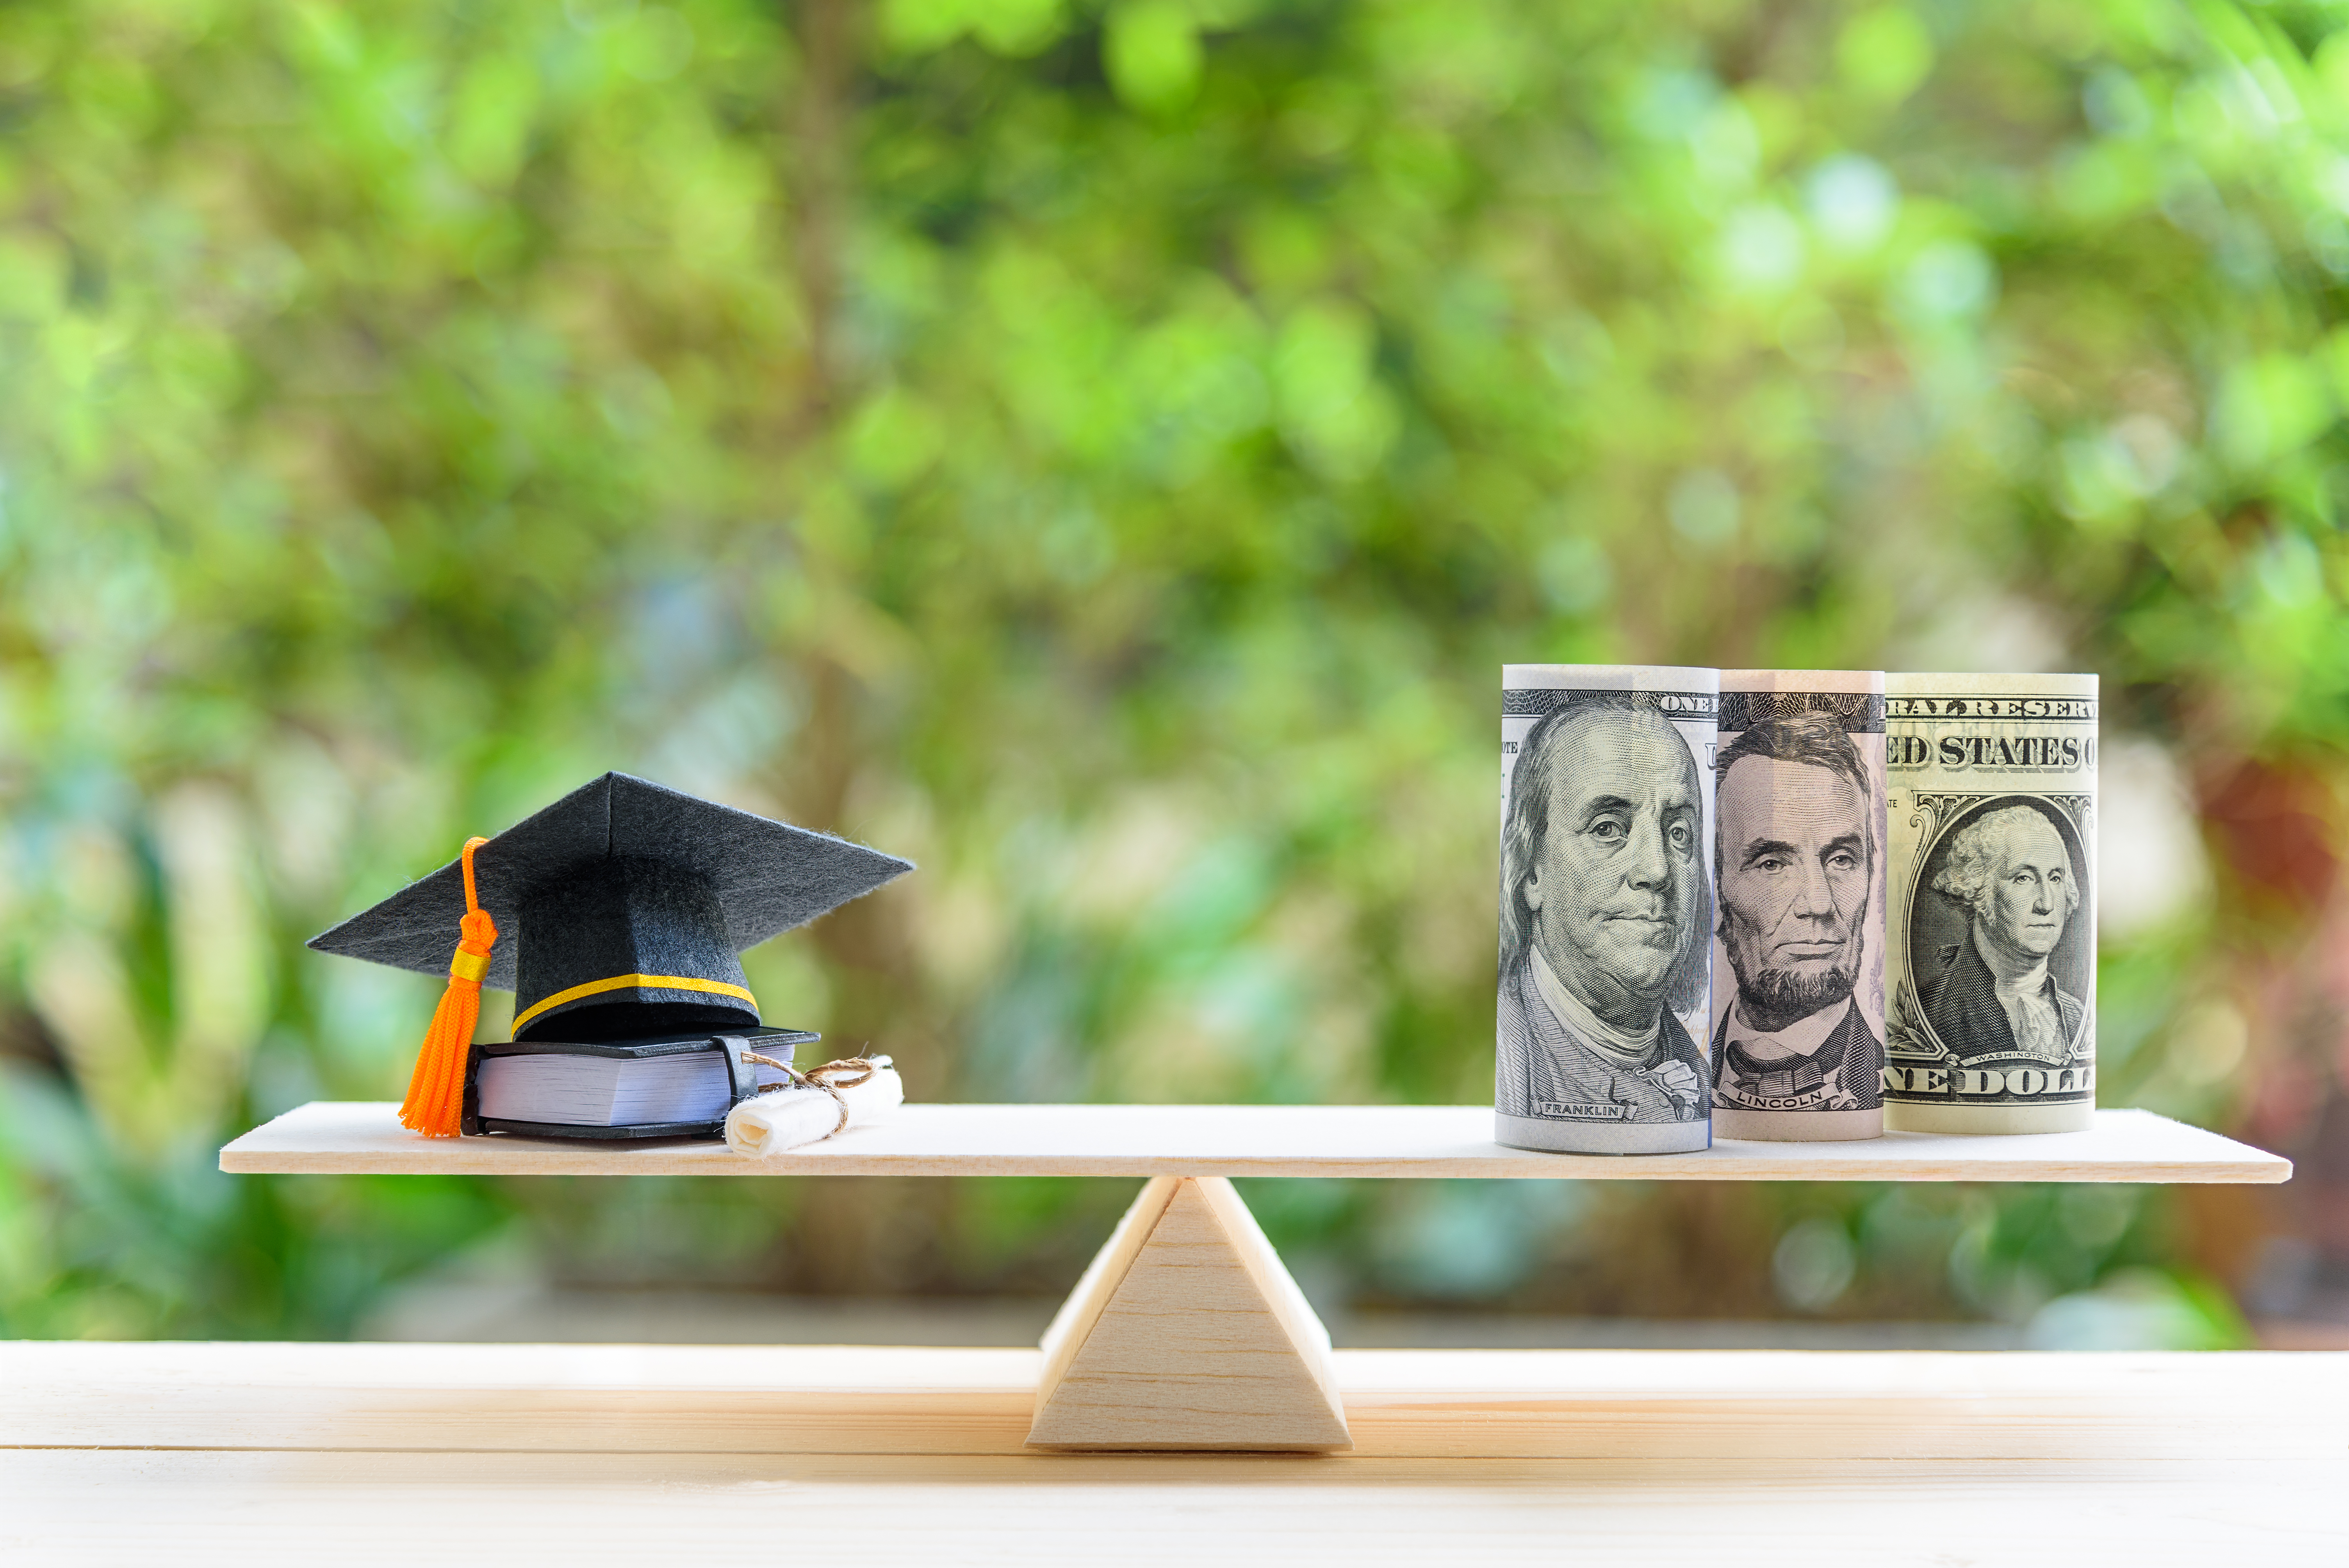 Monetary Inquisition Group LLC dba FREEDOM LOAN RESOLUTION Helps Students Tackle Student Debt